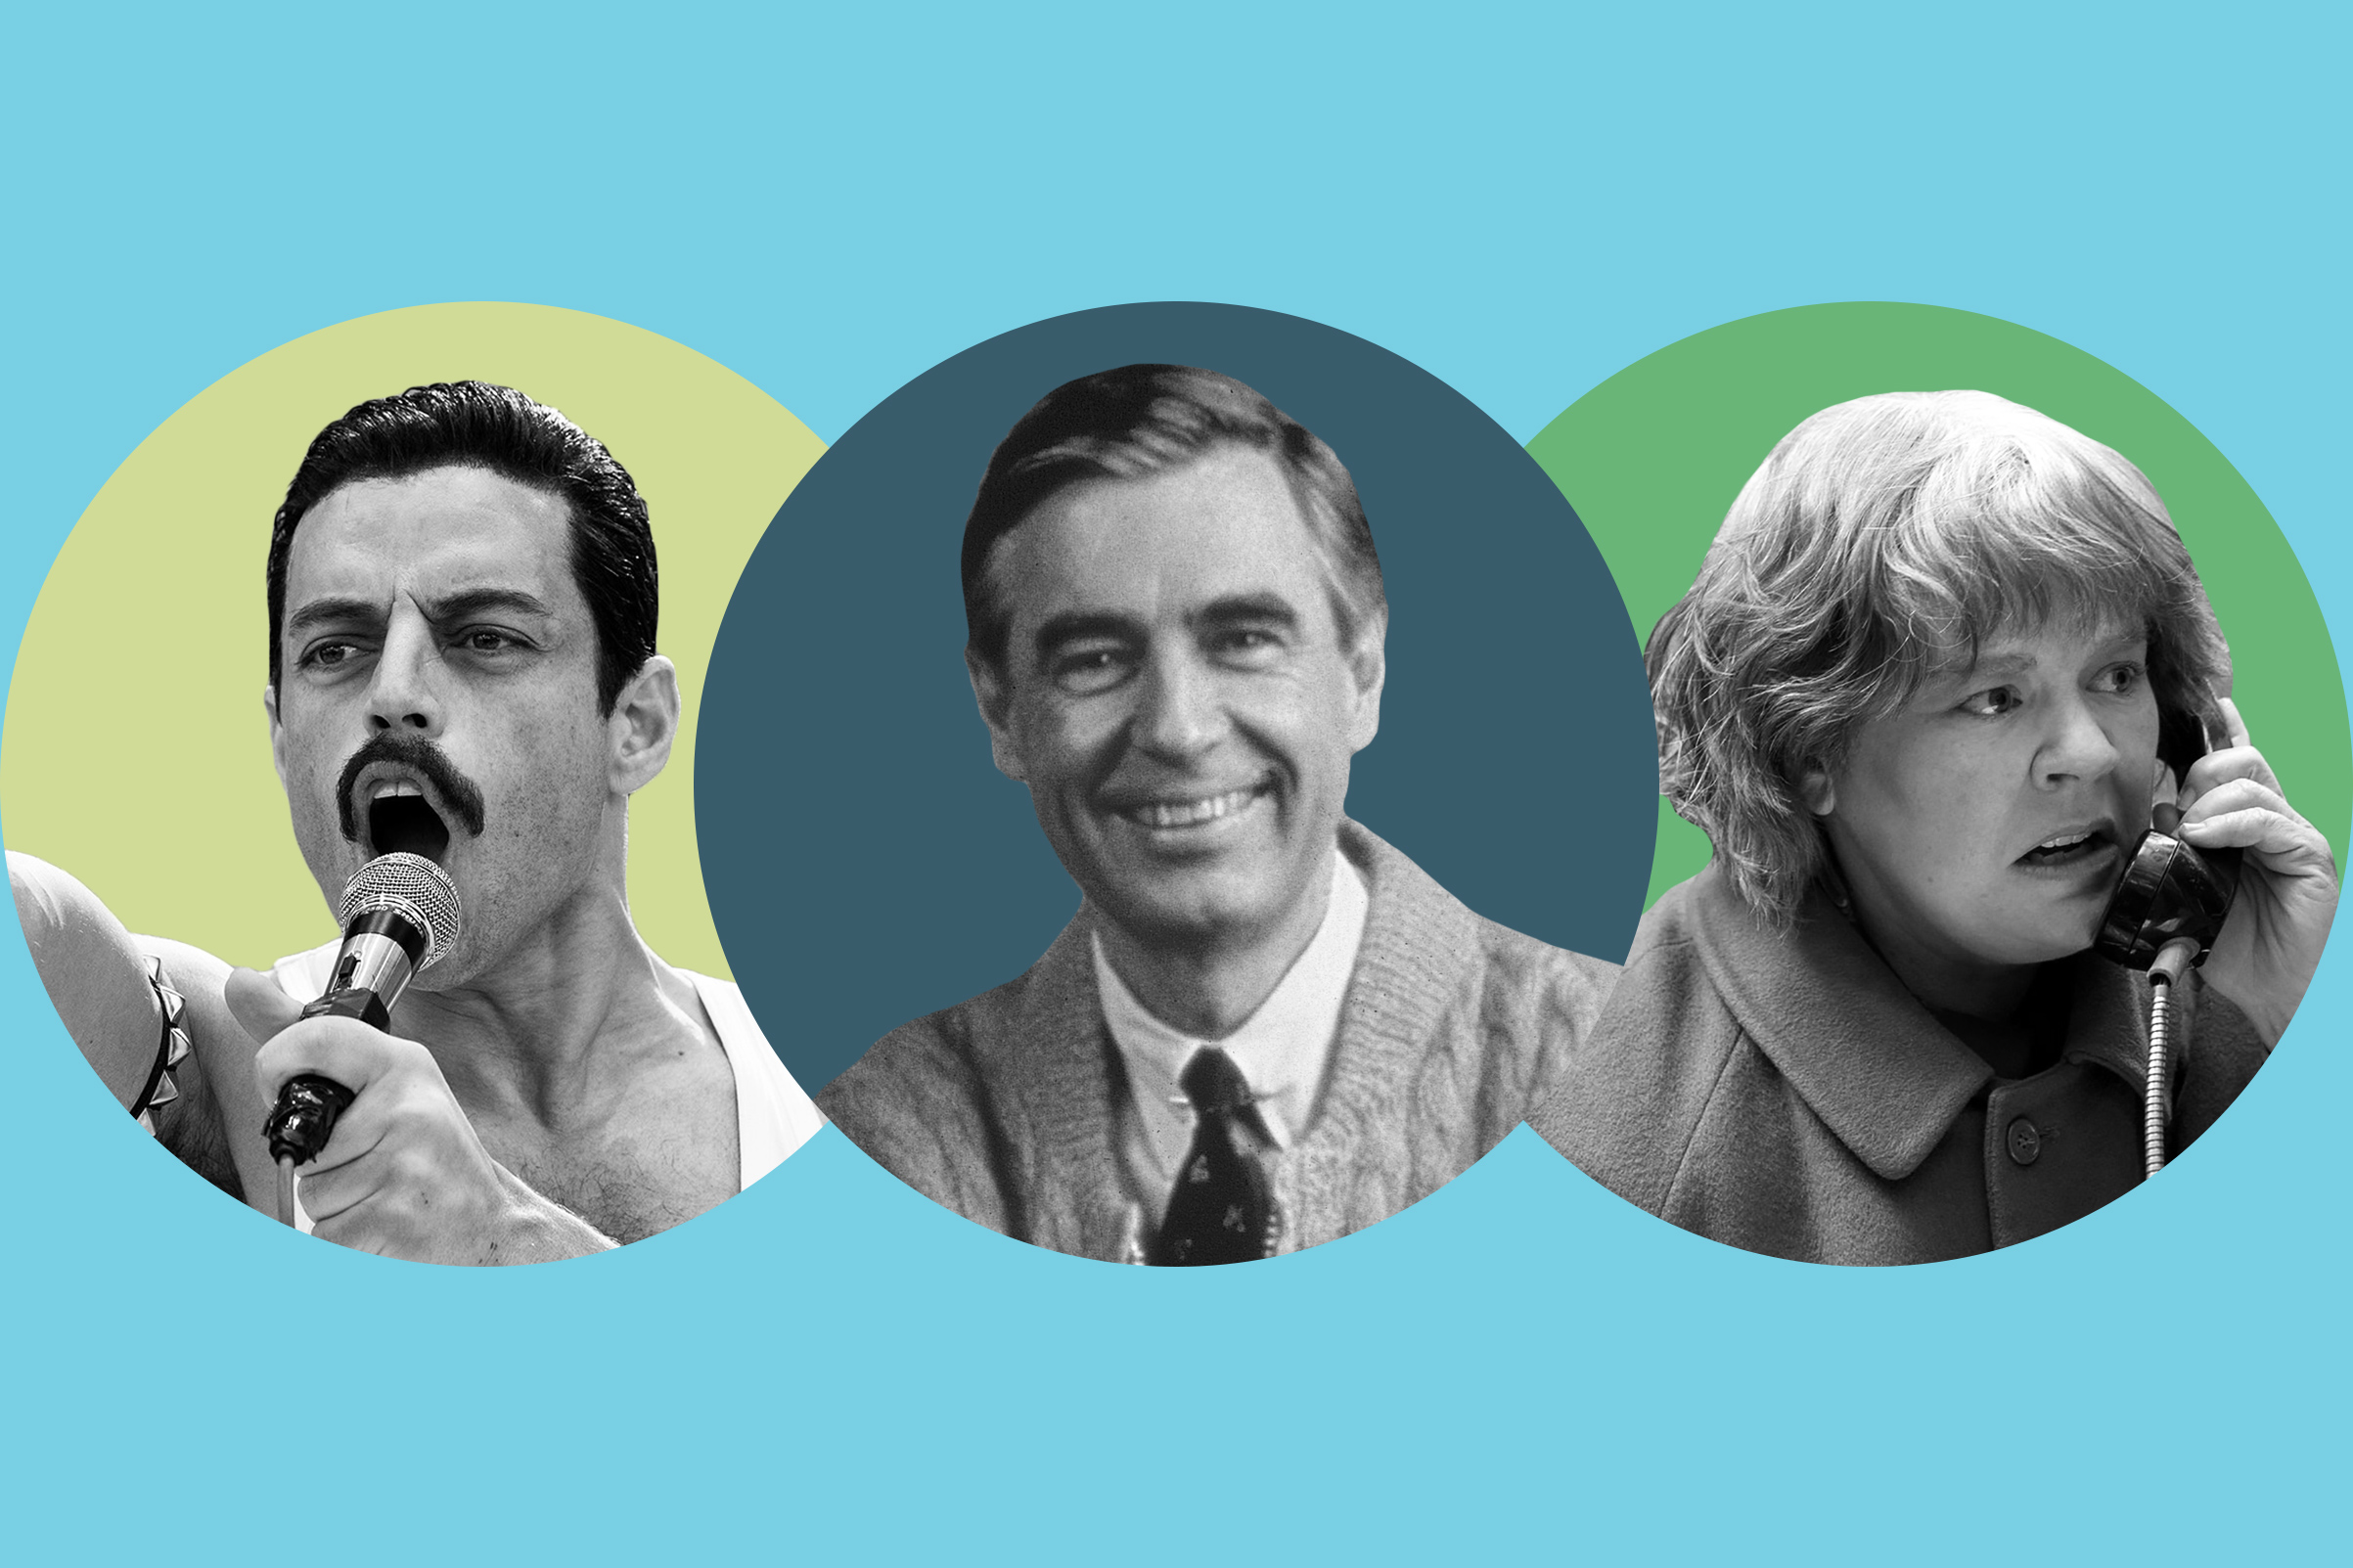 Rami Malek in 'Bohemian Rhapsody'; Mr. Rogers from 'Won't You Be My Neighbor?'; Melissa McCarthy in 'Can You Ever Forgive Me?'